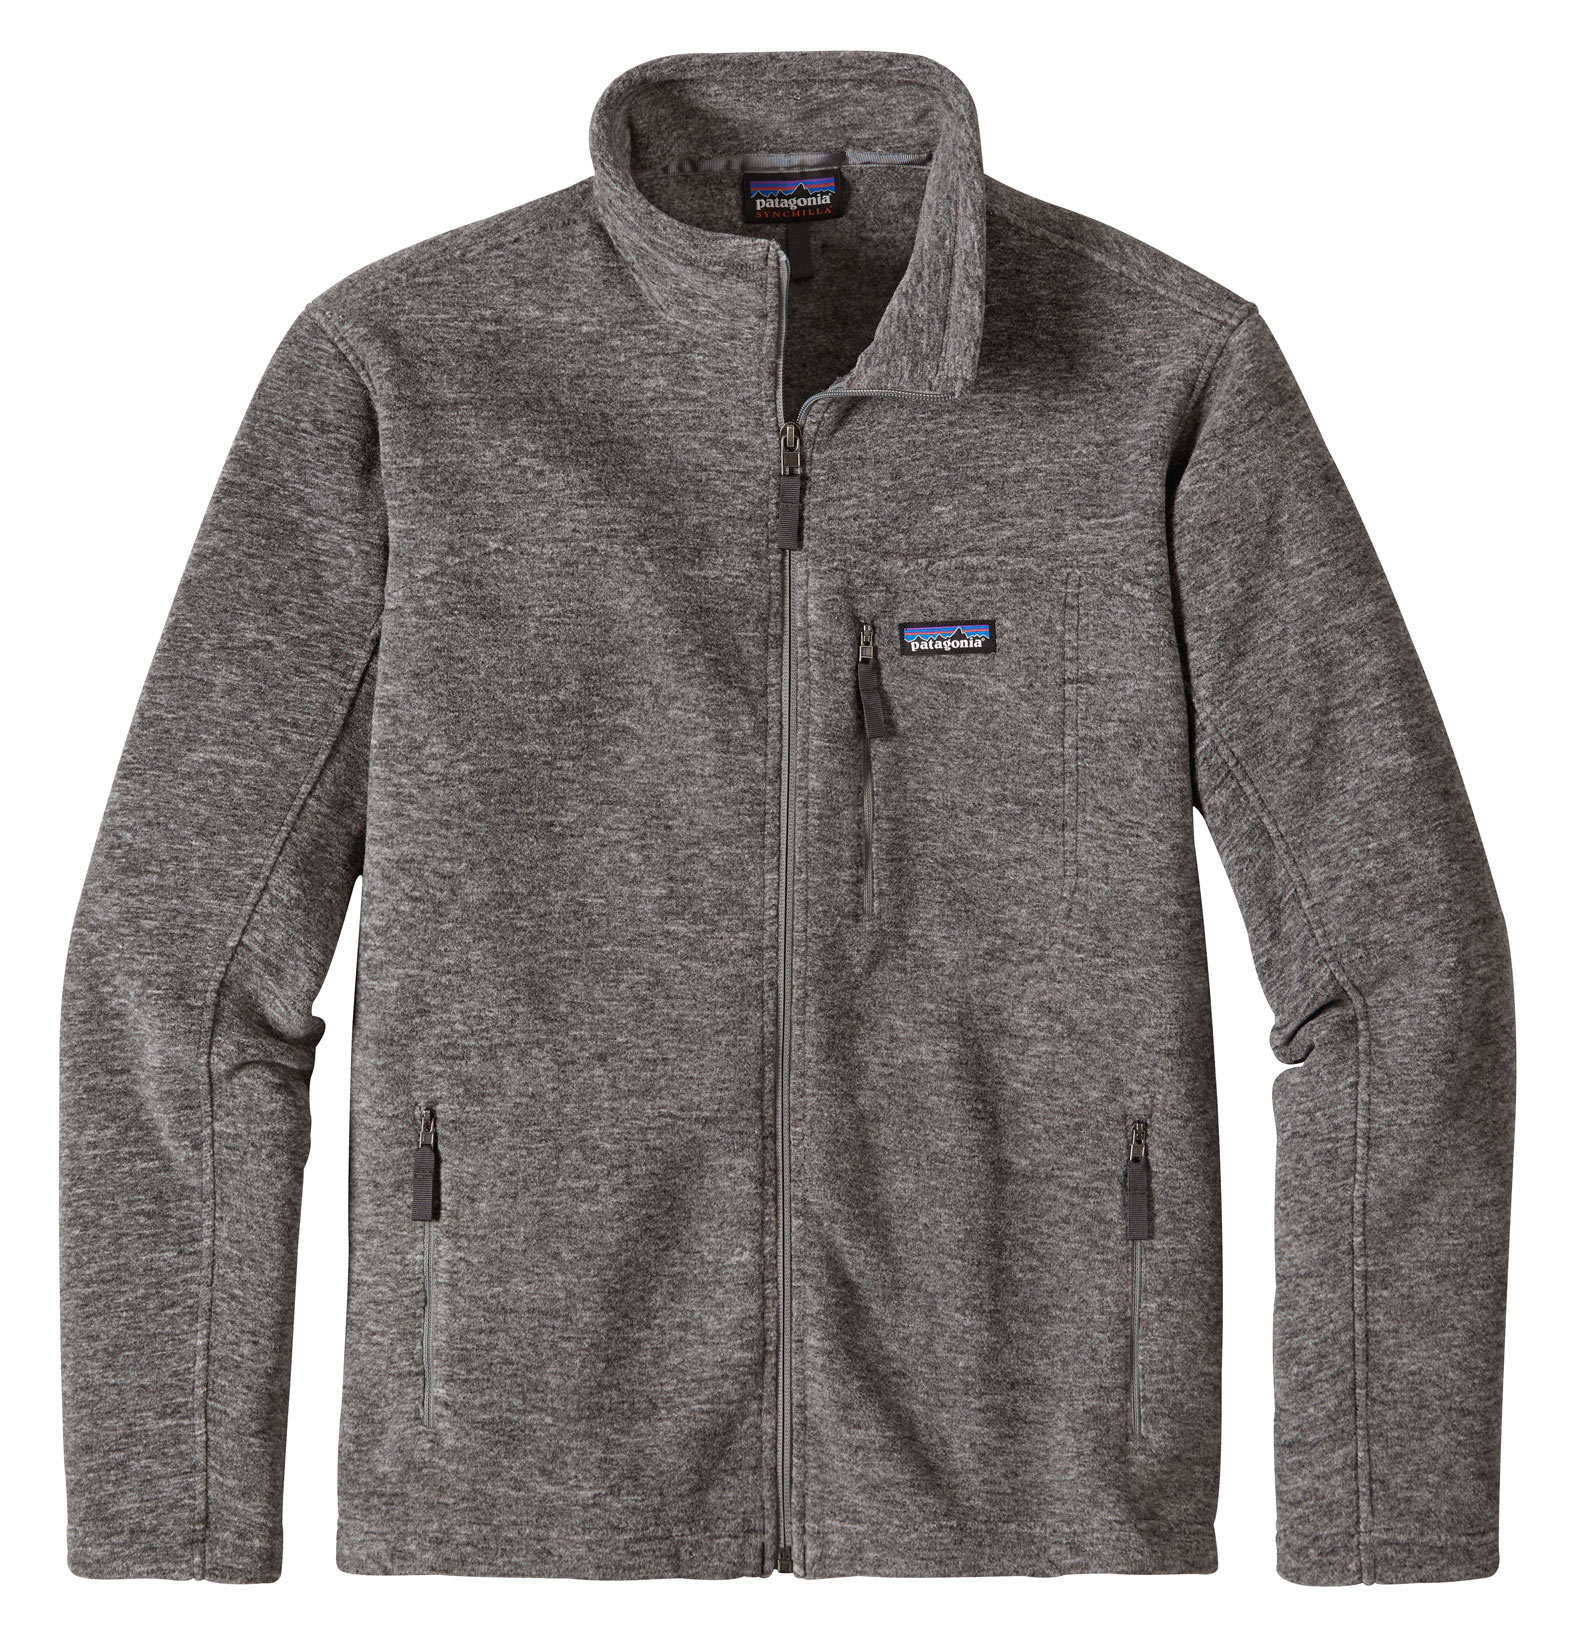 Patagonia Mens Classic Synchilla® Jacket